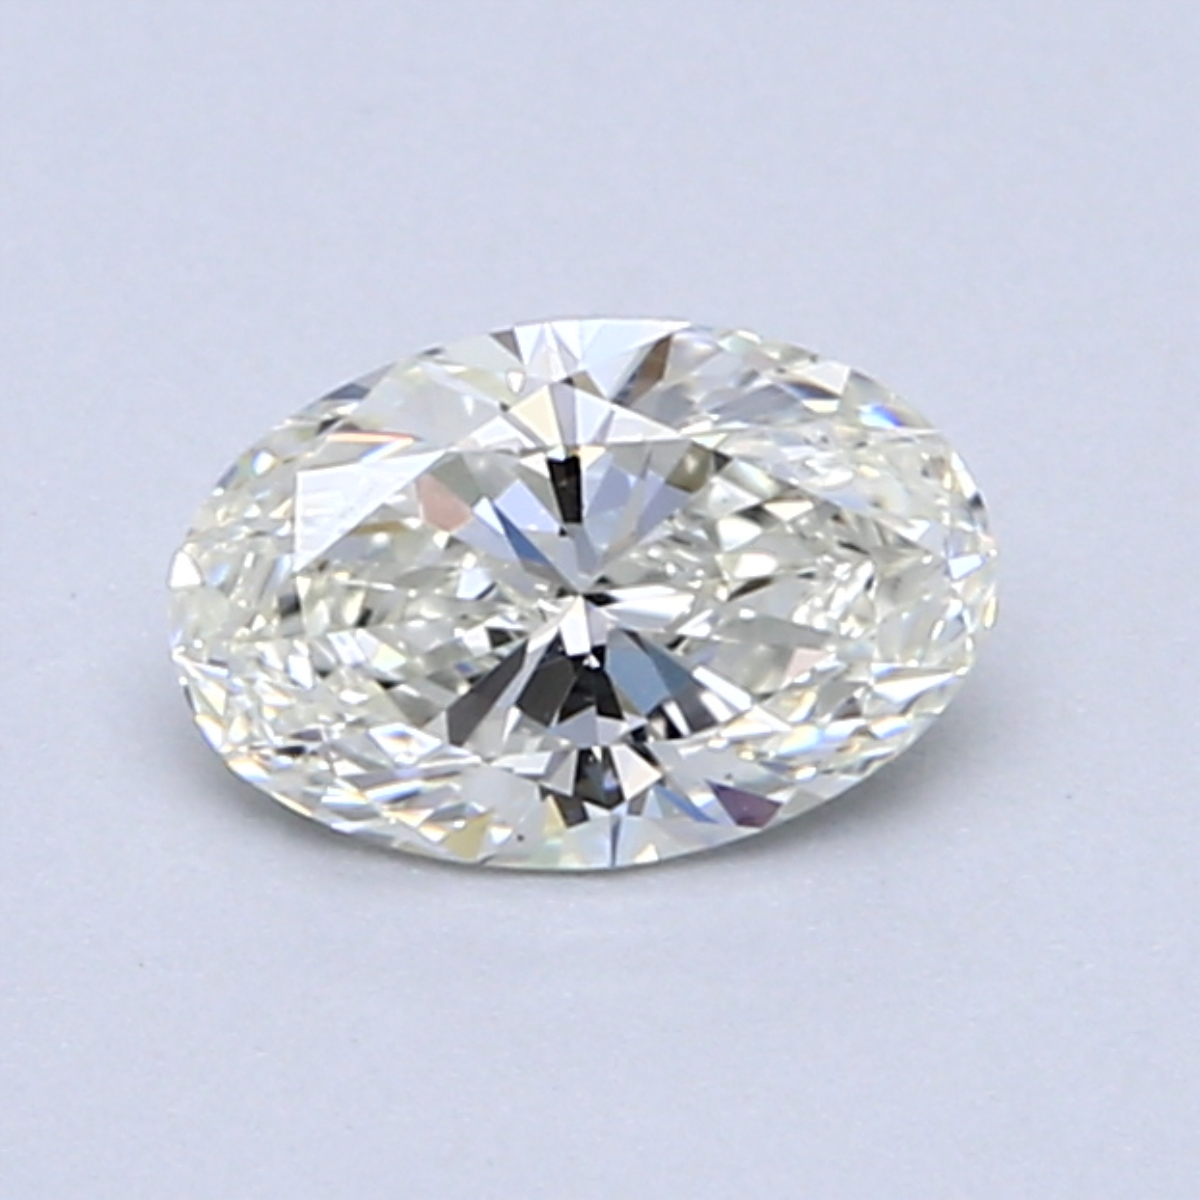 0.51 Carat I VS2 Good Diamond